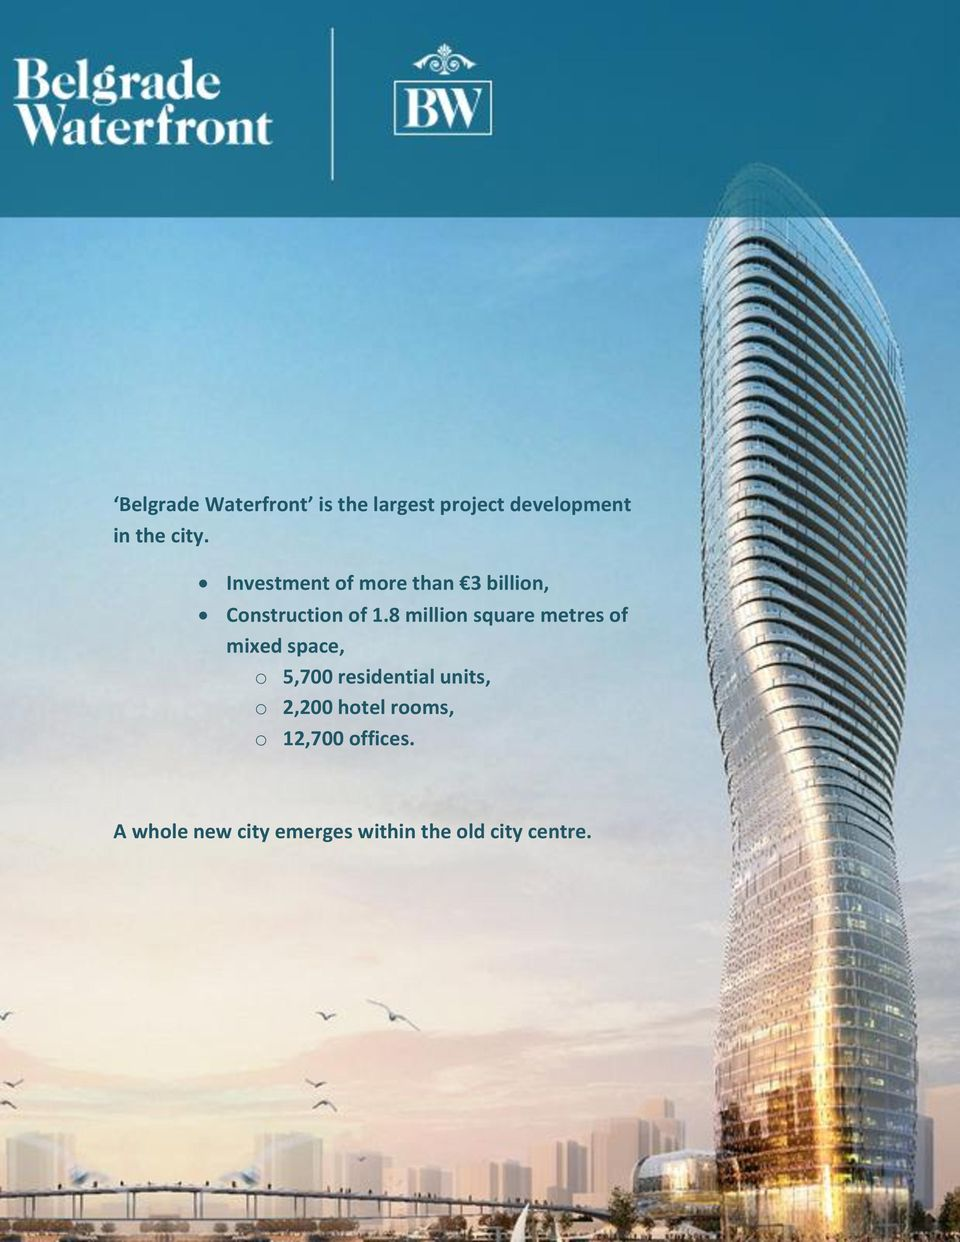 8 million square metres of mixed space, o 5,700 residential units, o 2,200